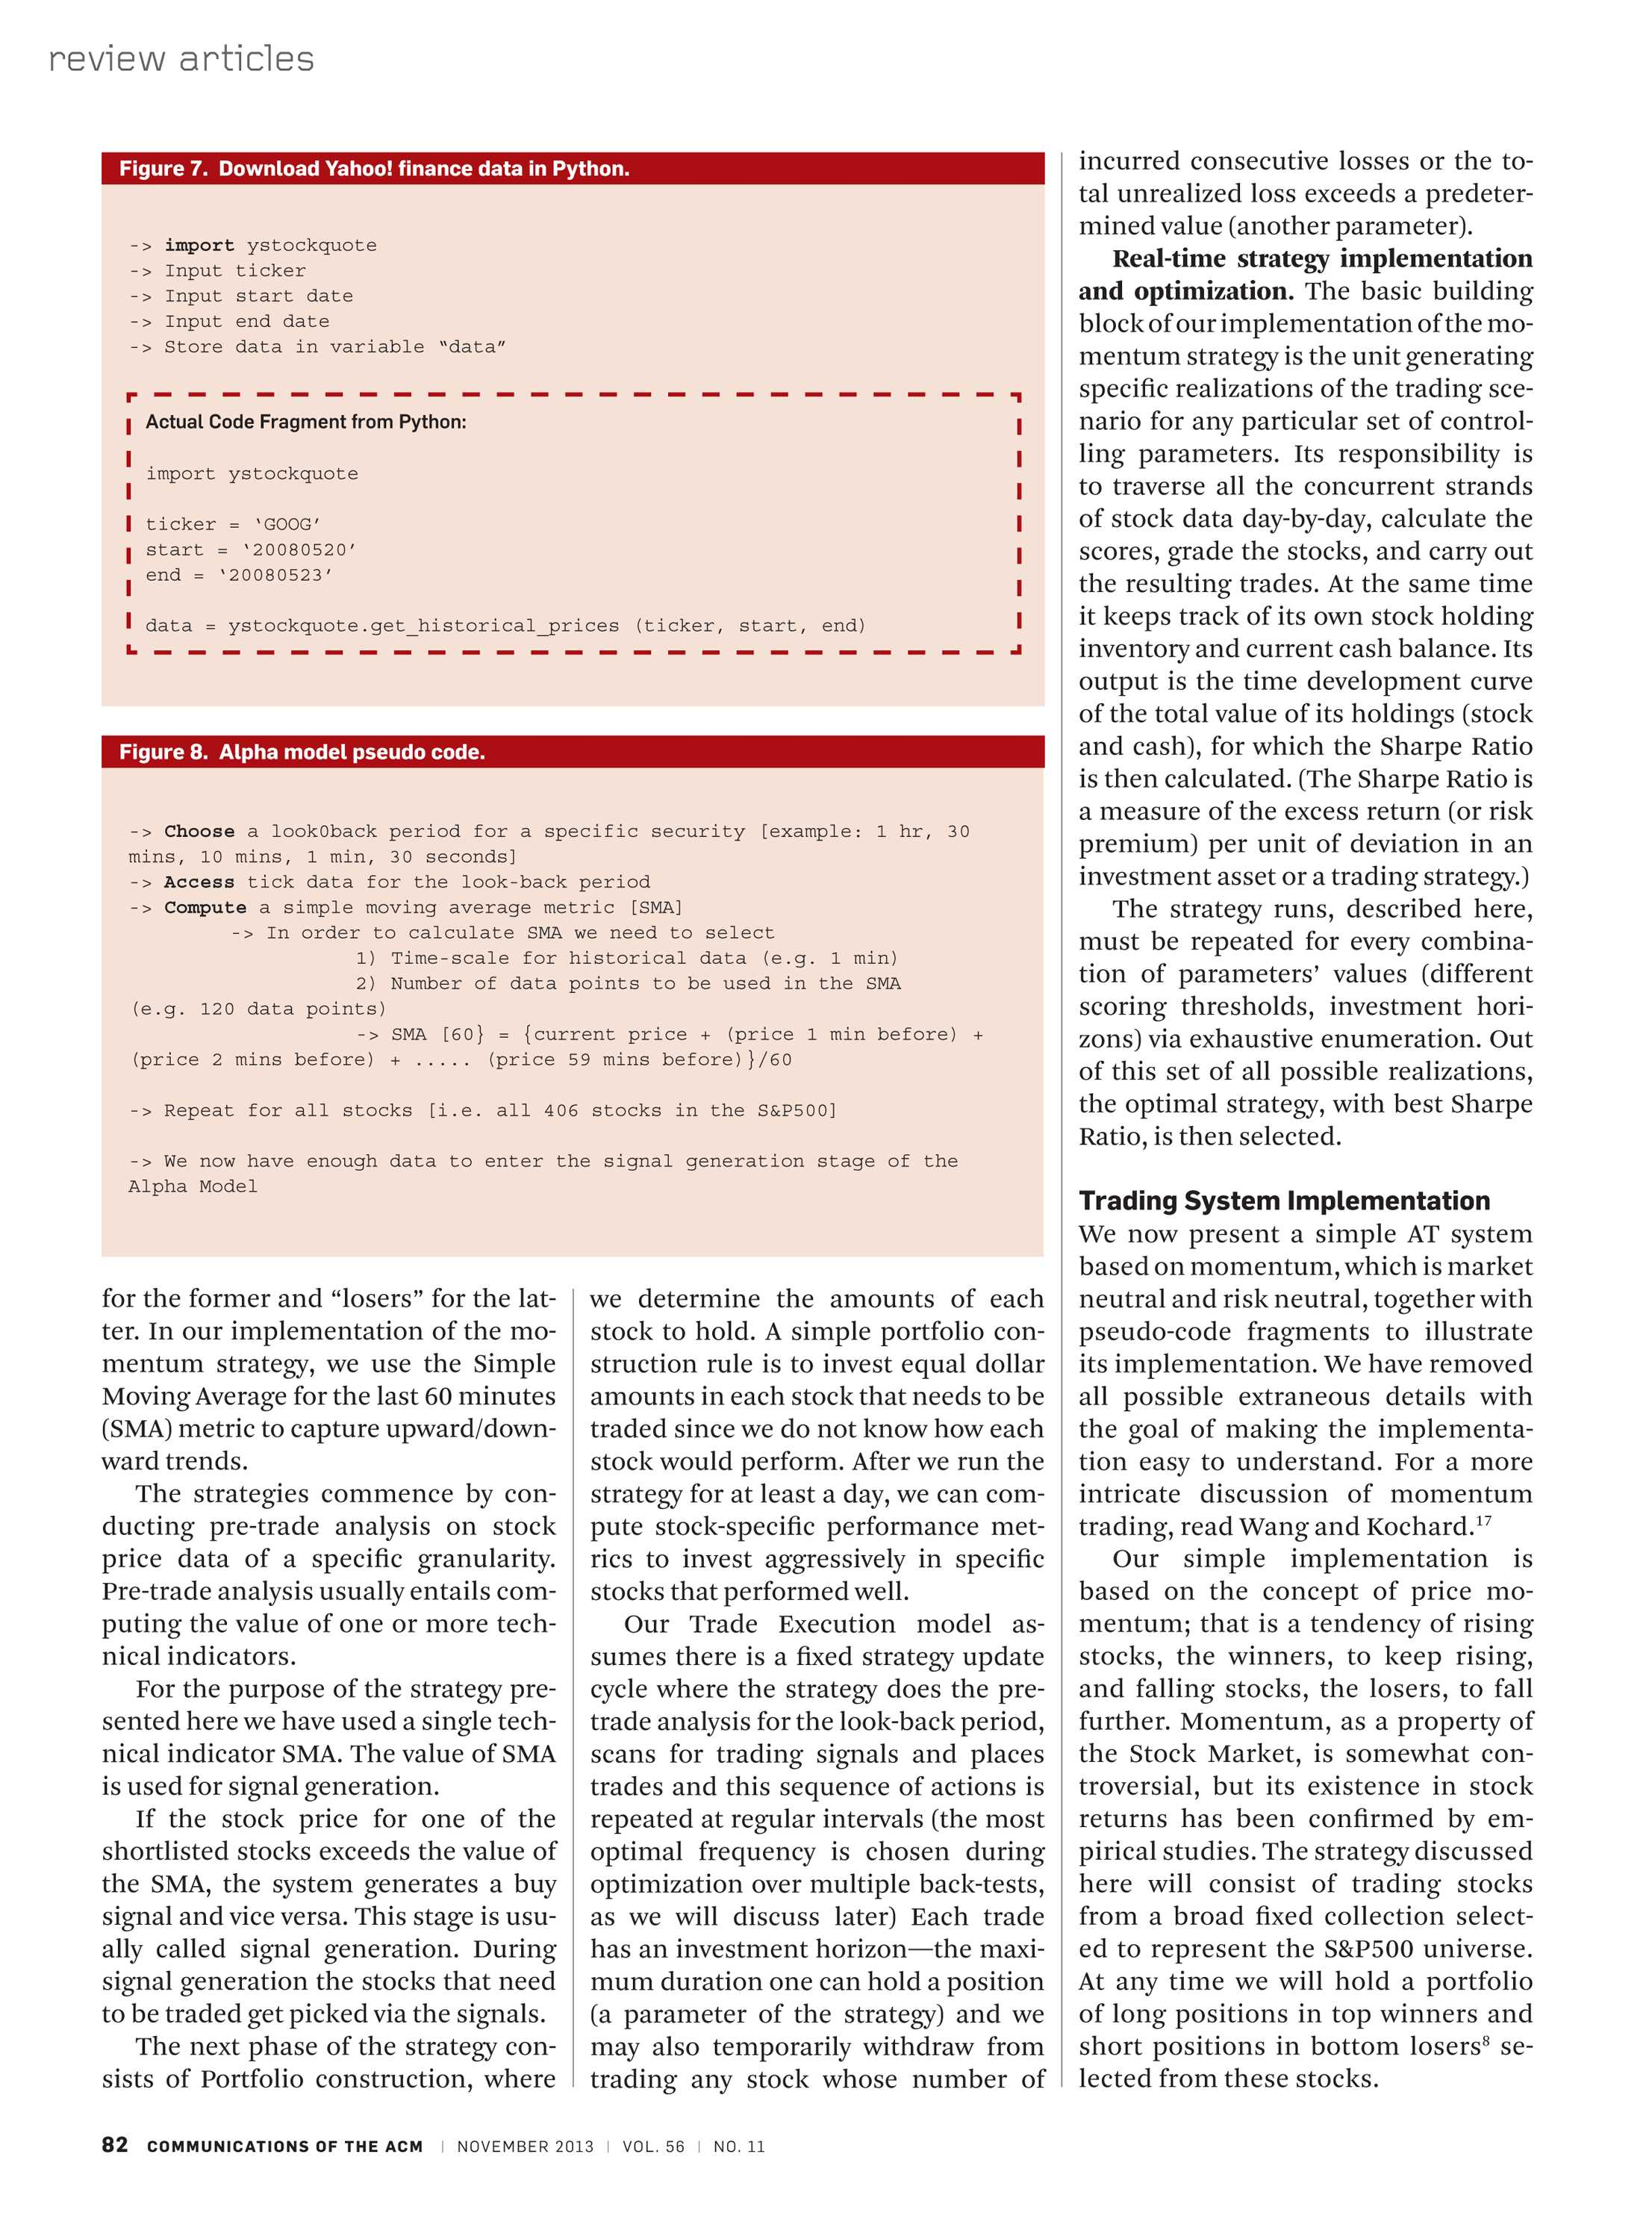 Communications of the ACM - November 2013 - page 82